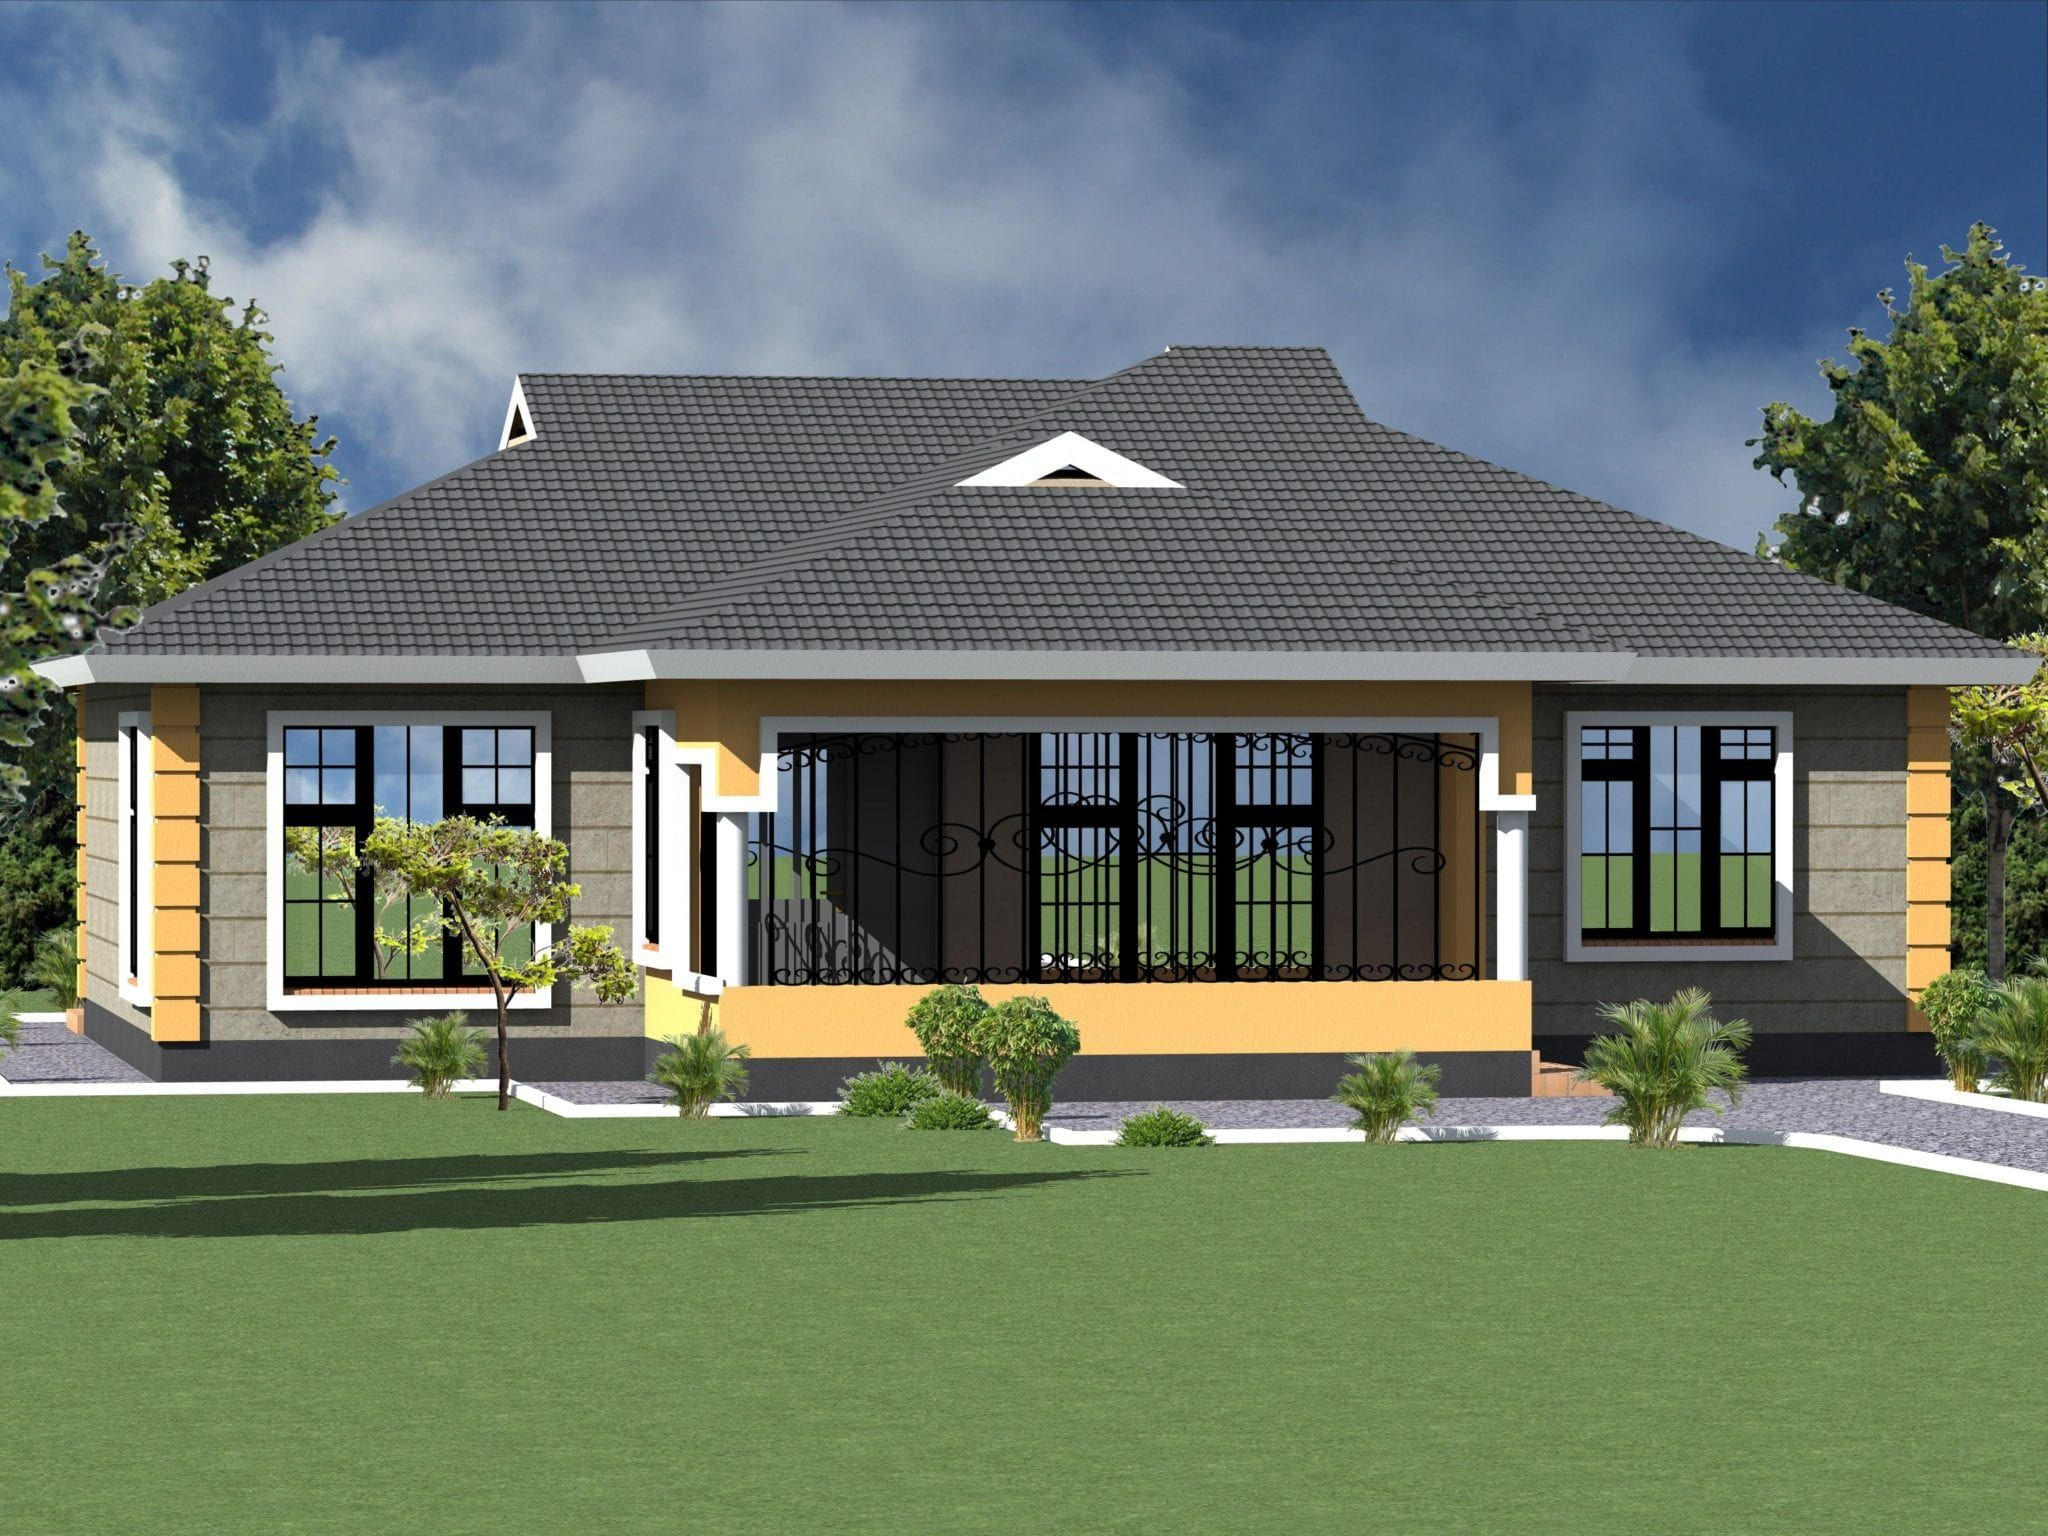 Best House Plans In Kenya In 2020 Modern Bungalow House House Construction Plan Bungalow House Design